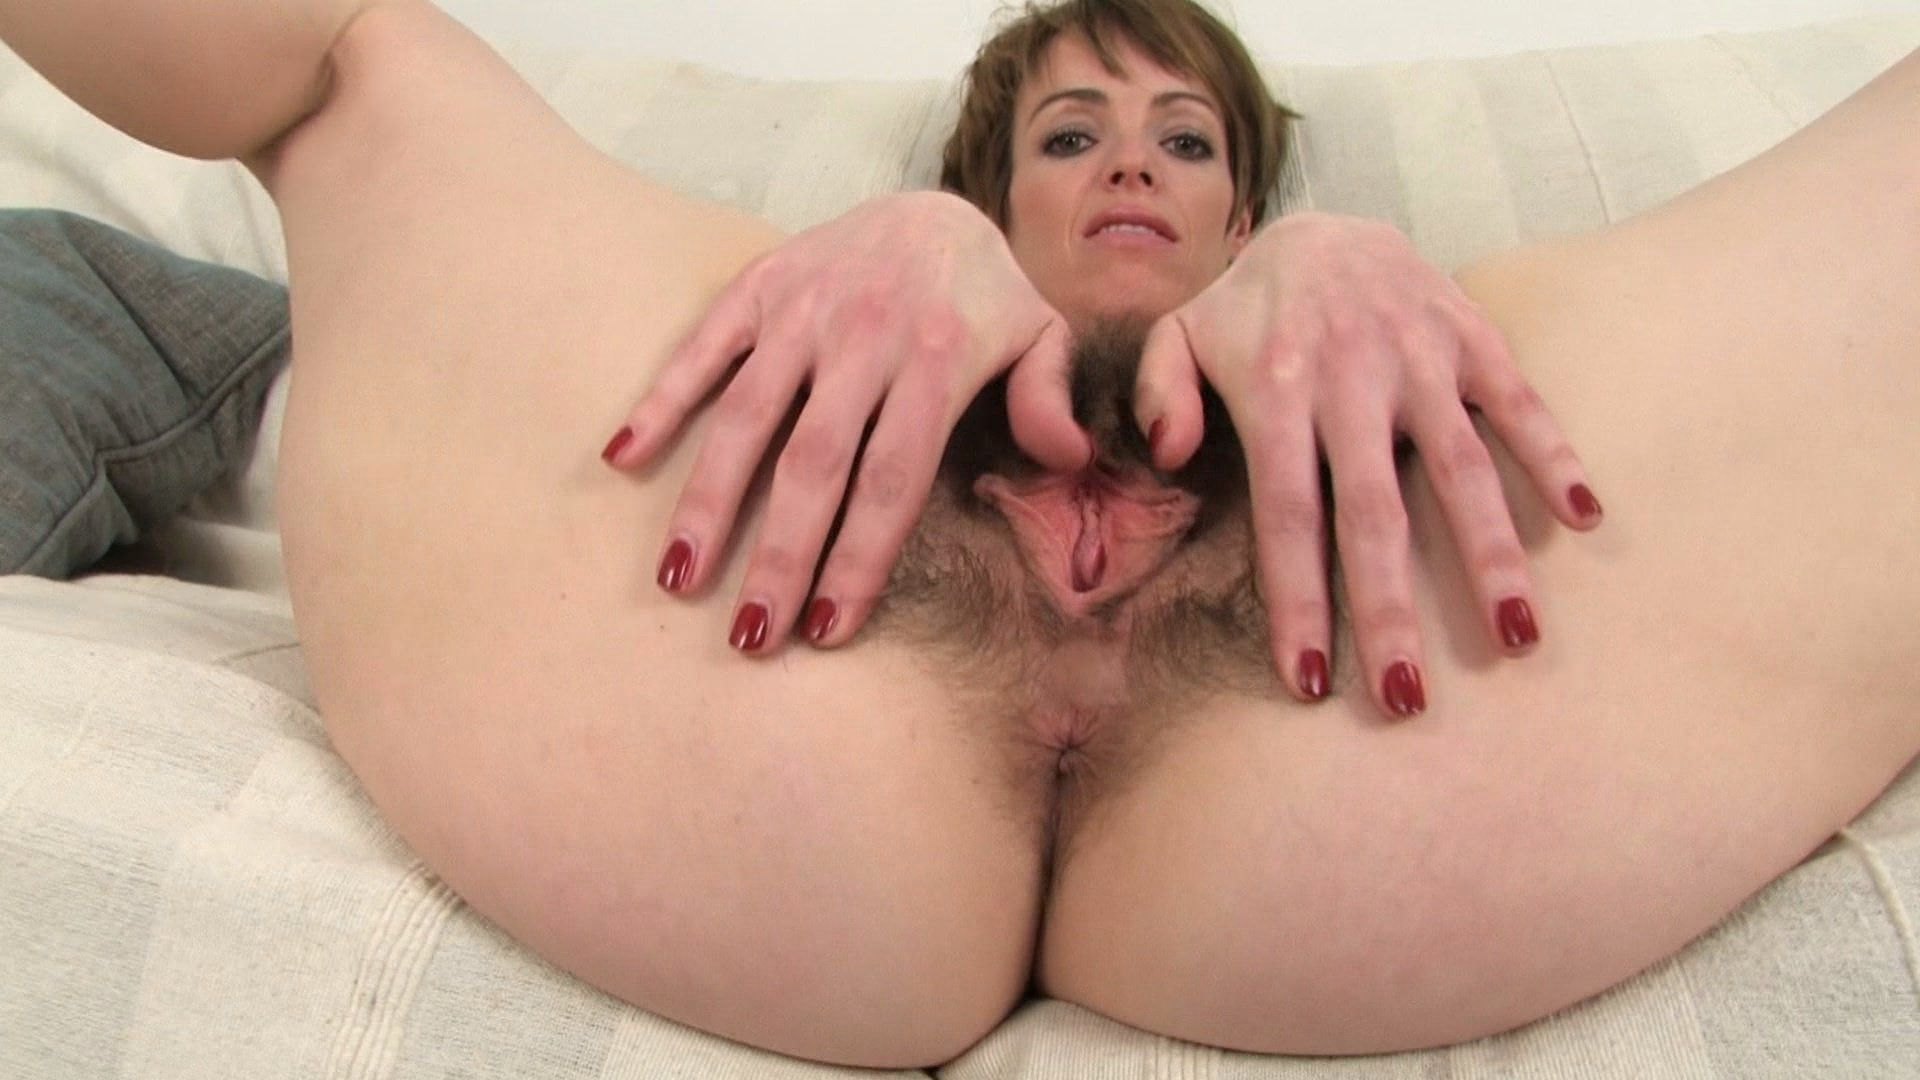 Girls images pussy england